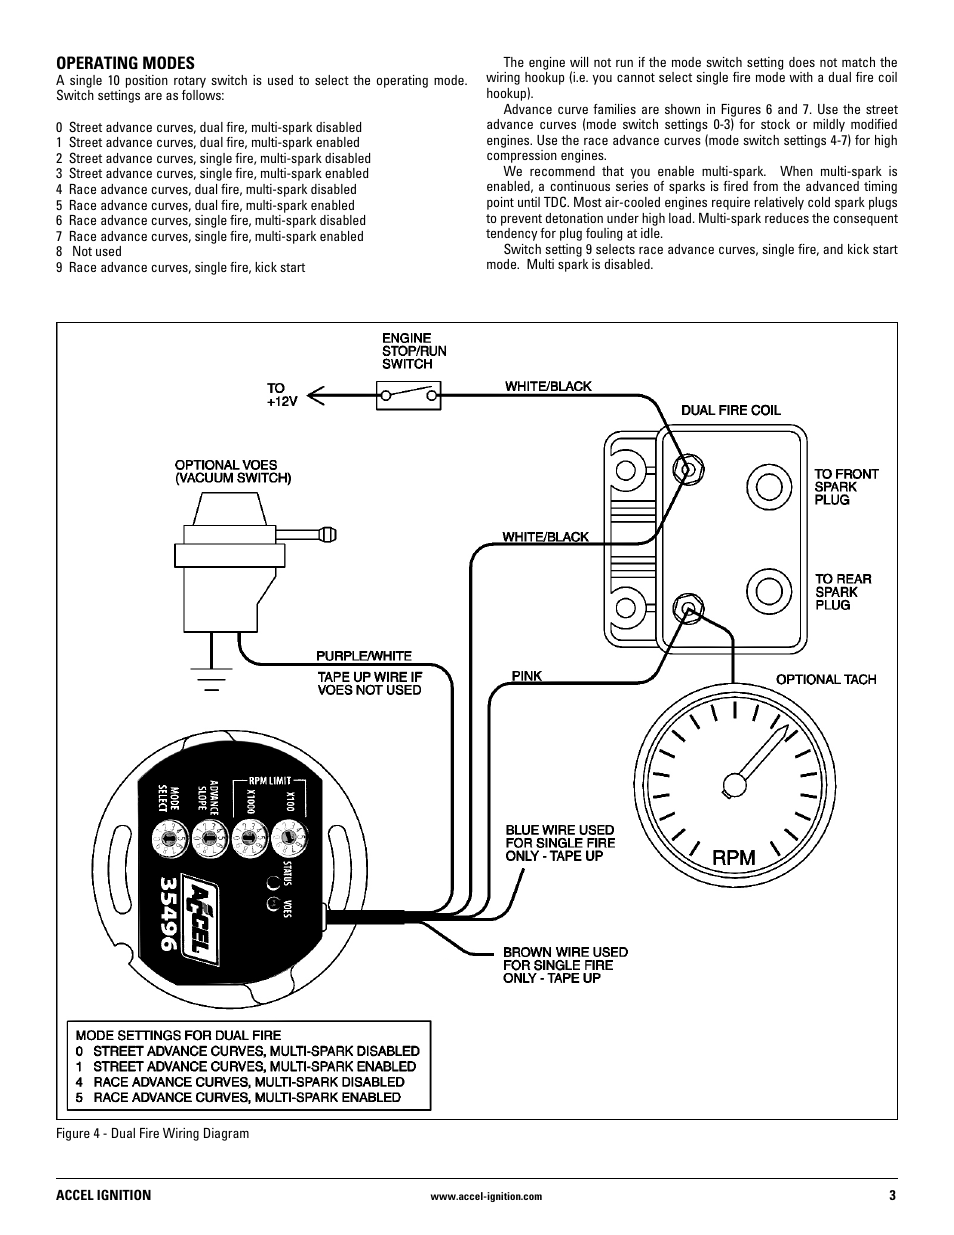 mallory ignition accel ignition 35496 page3?resize\\\\\\\\\\\\\\\=665%2C861 mallory unilite wiring diagram tamahuproject org unilite distributor wiring diagram at et-consult.org